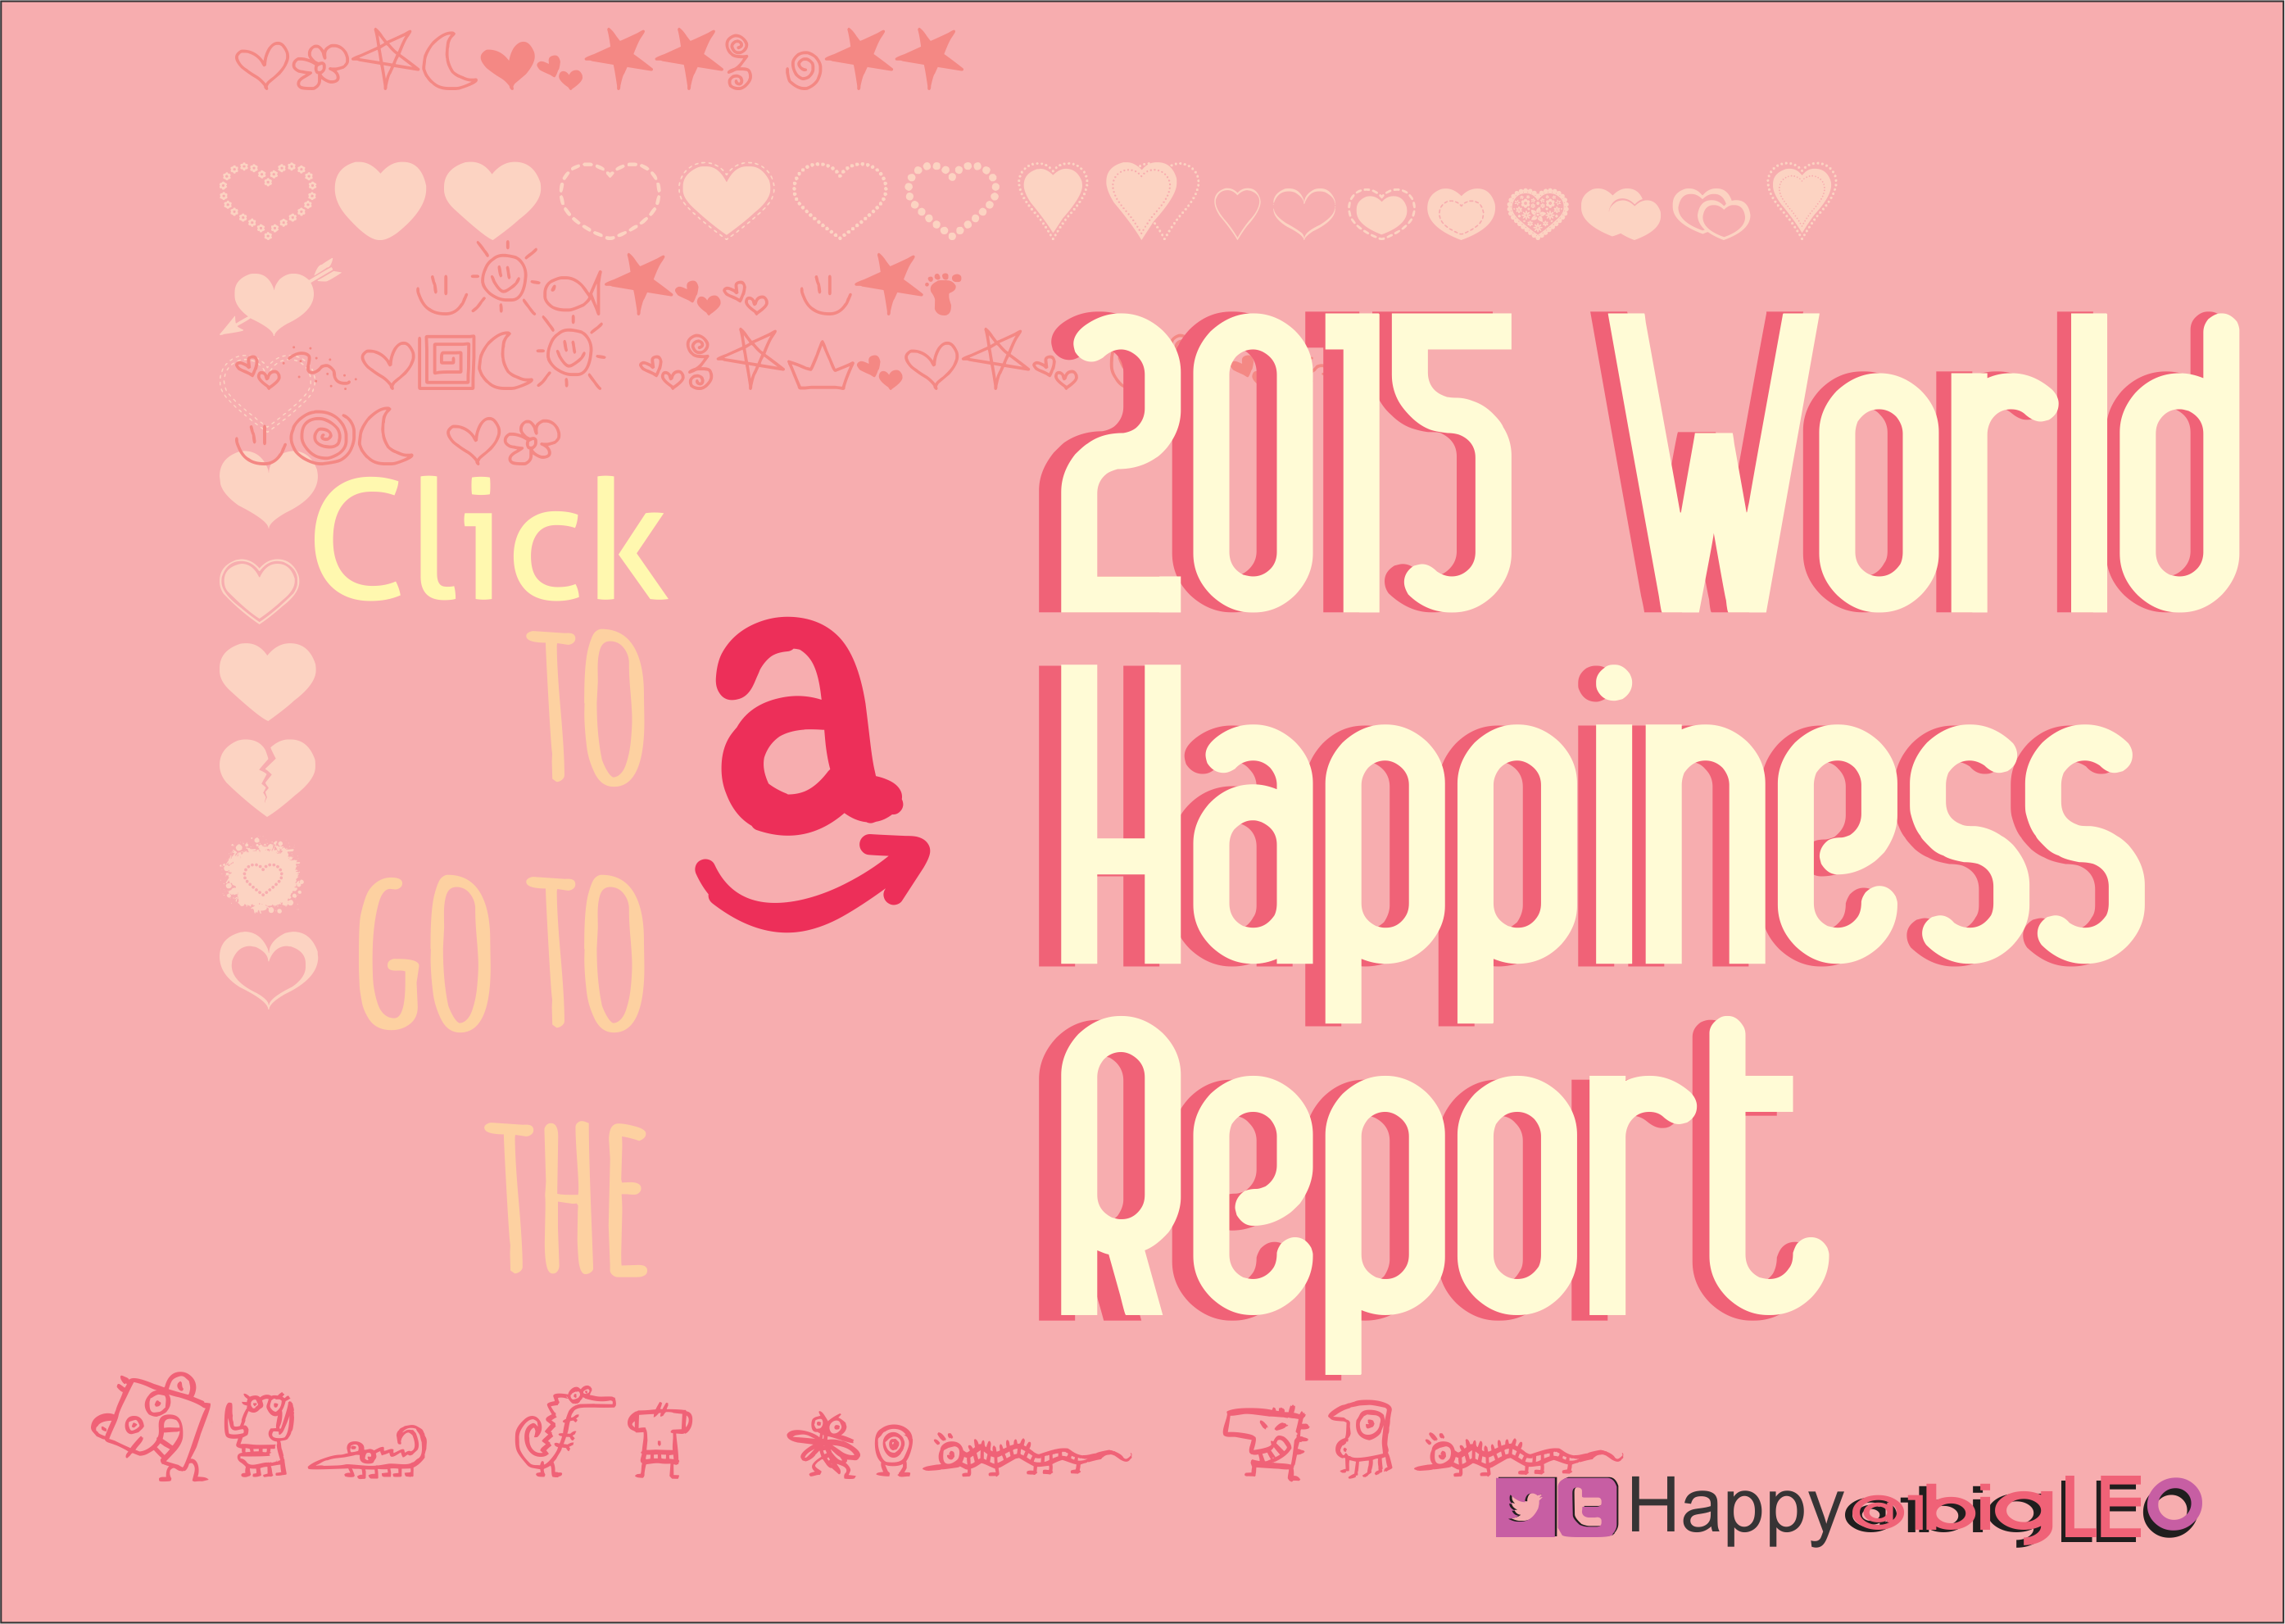 Read the 2015 world happiness report happiness report 2015 read the 2015 world happiness report freerunsca Choice Image